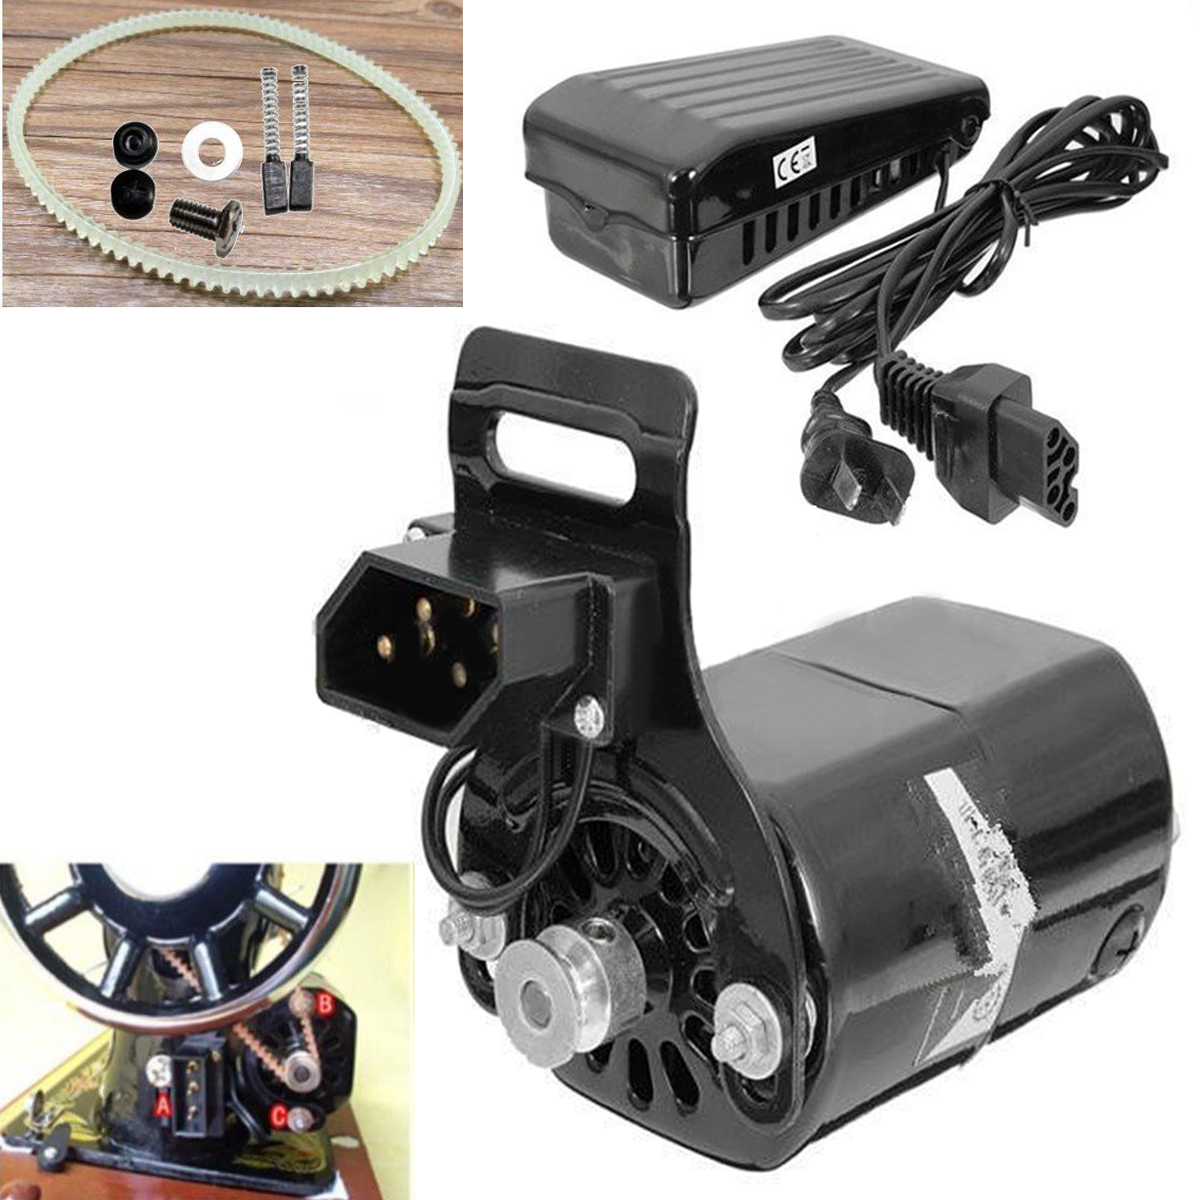 Black 220V 180W 0.9A Black Domestic Household Sewing Machine Motor + Controller